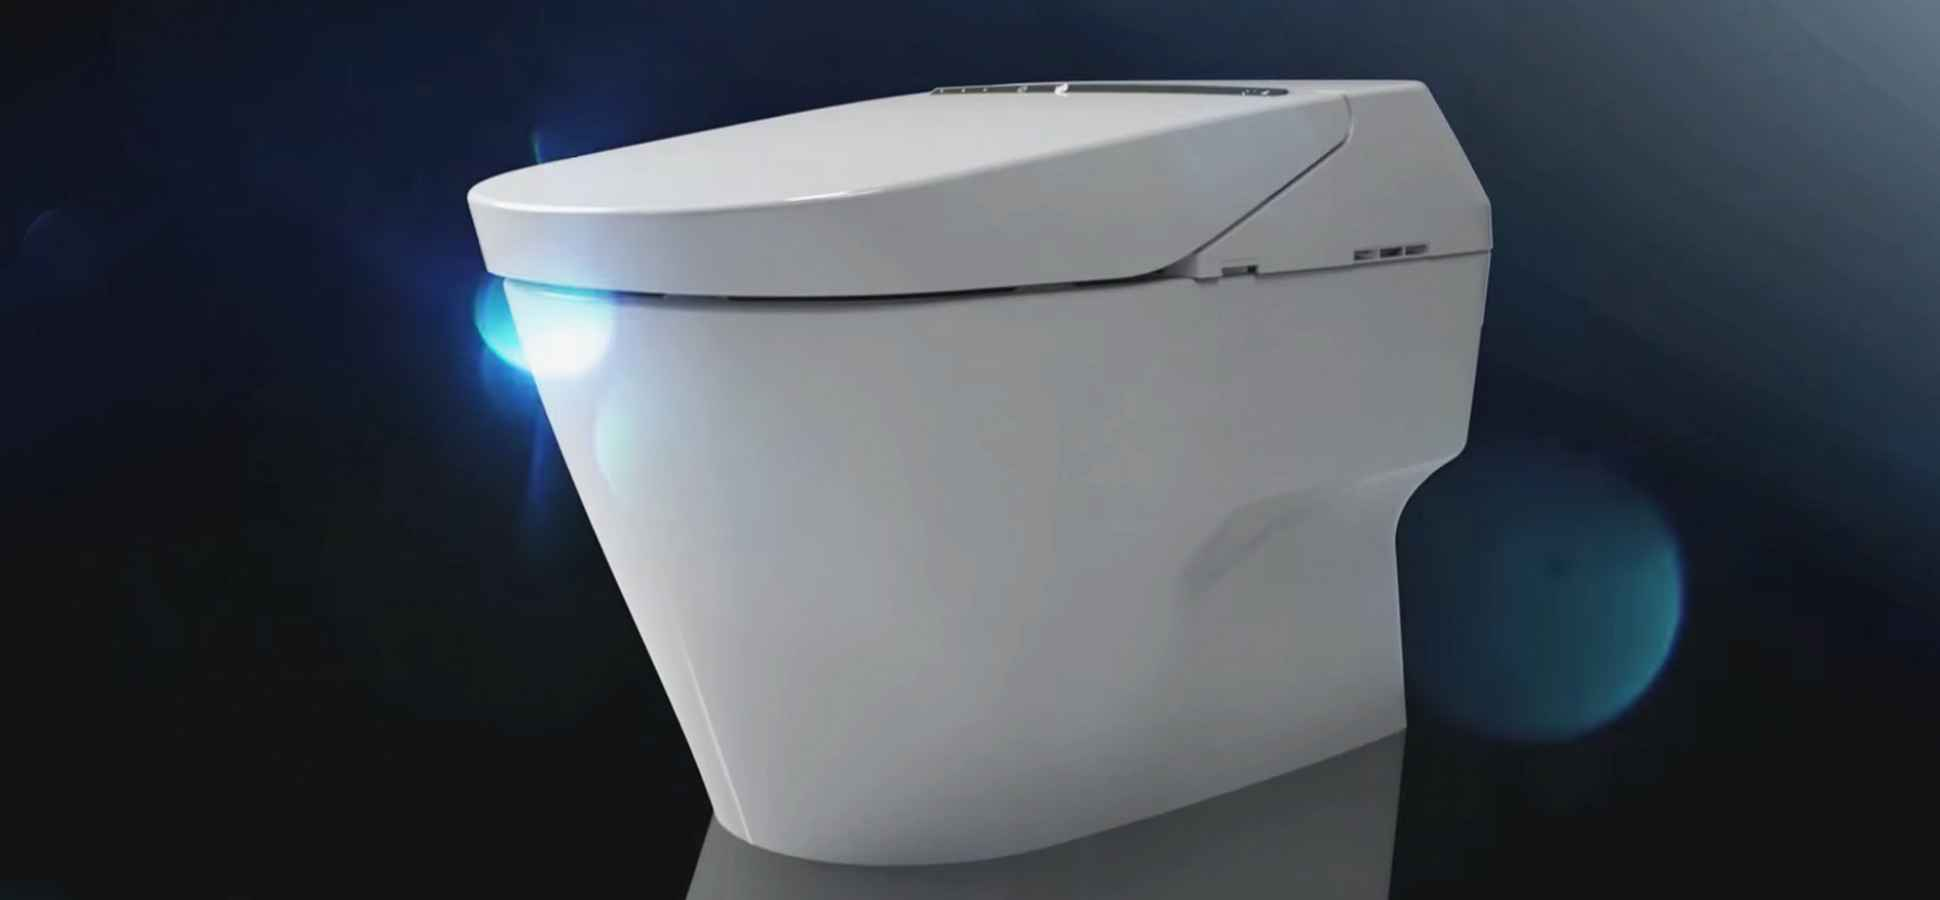 Why This \'Mercedes Benz of Toilets\' Costs $10,200 | Inc.com